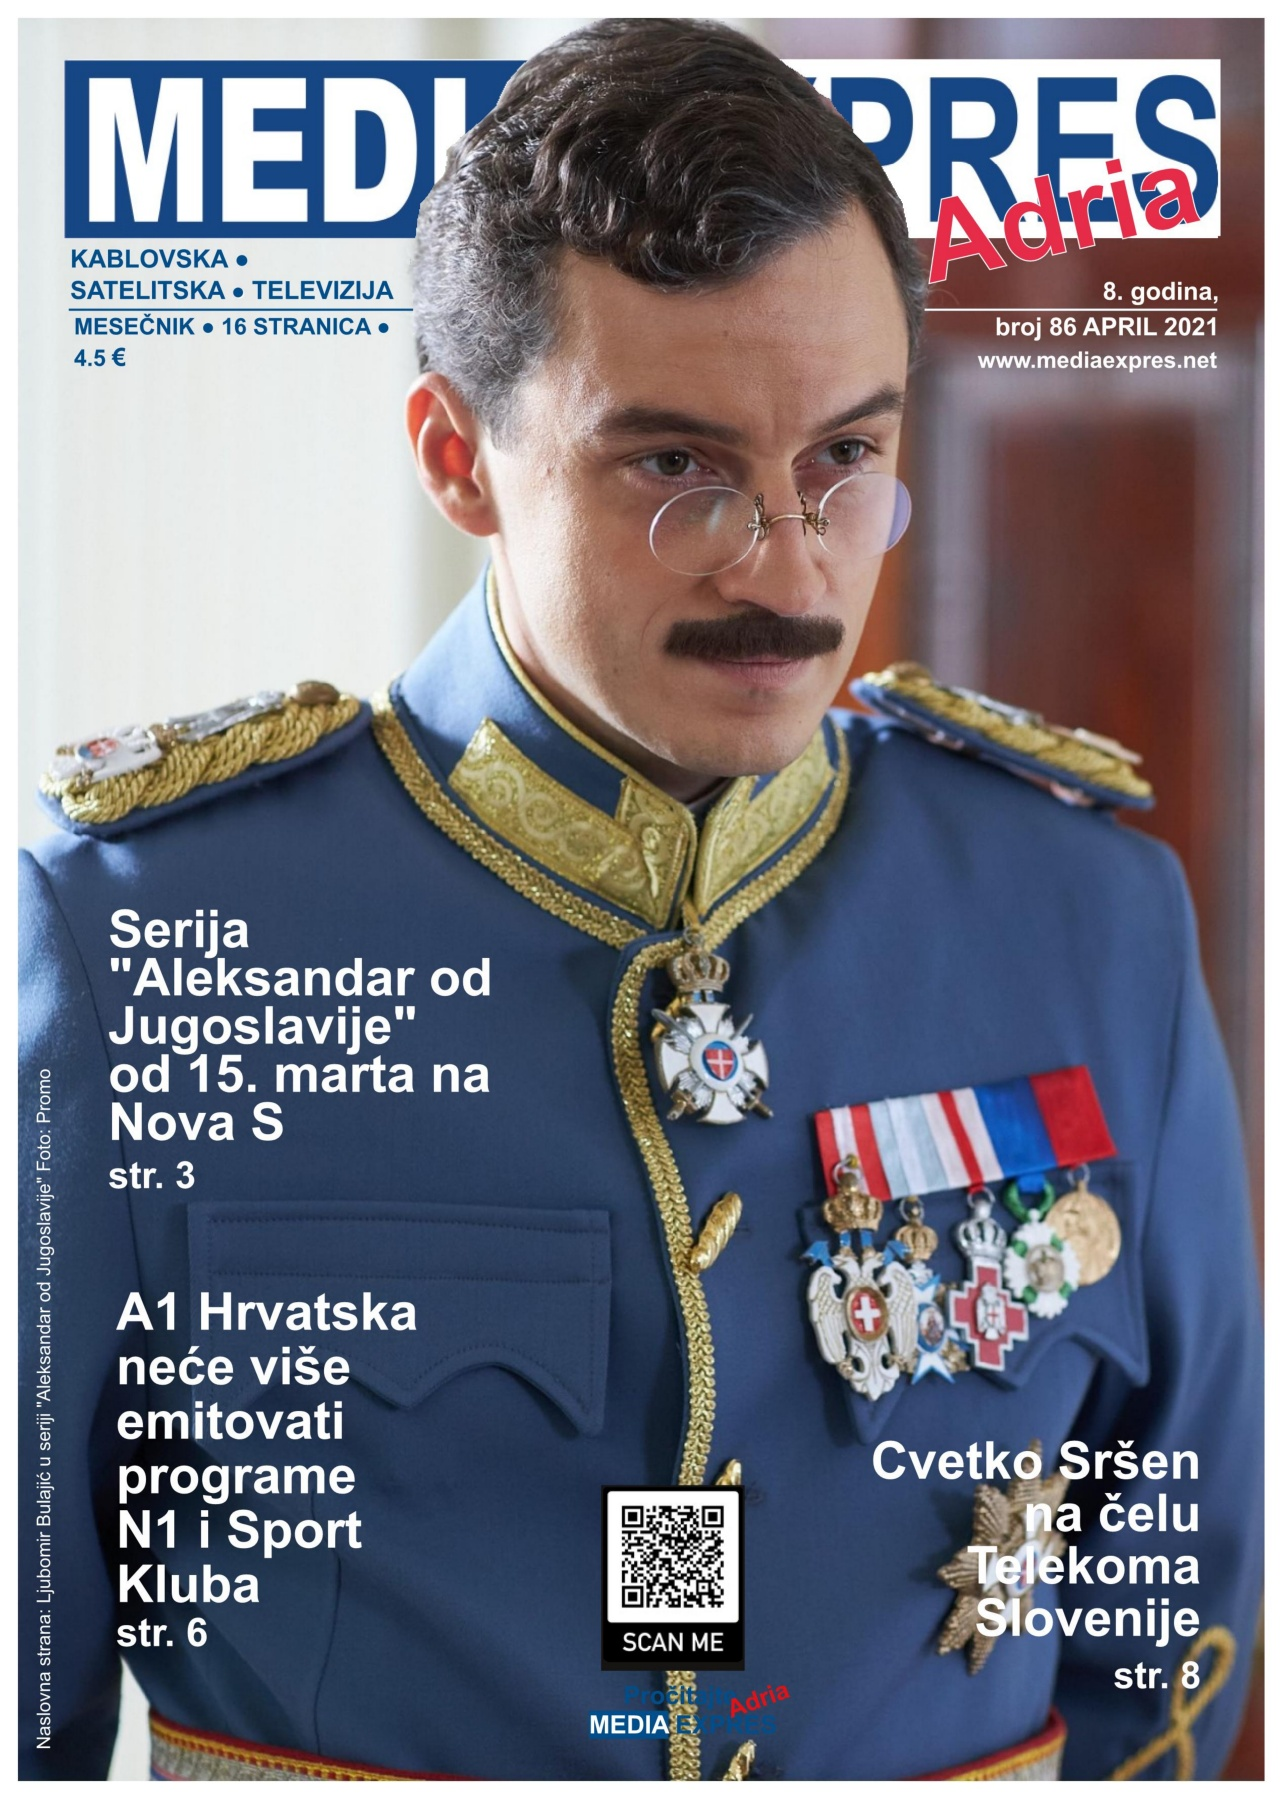 Media Expres Adria No. 4 APRIL 2021 1st Cover